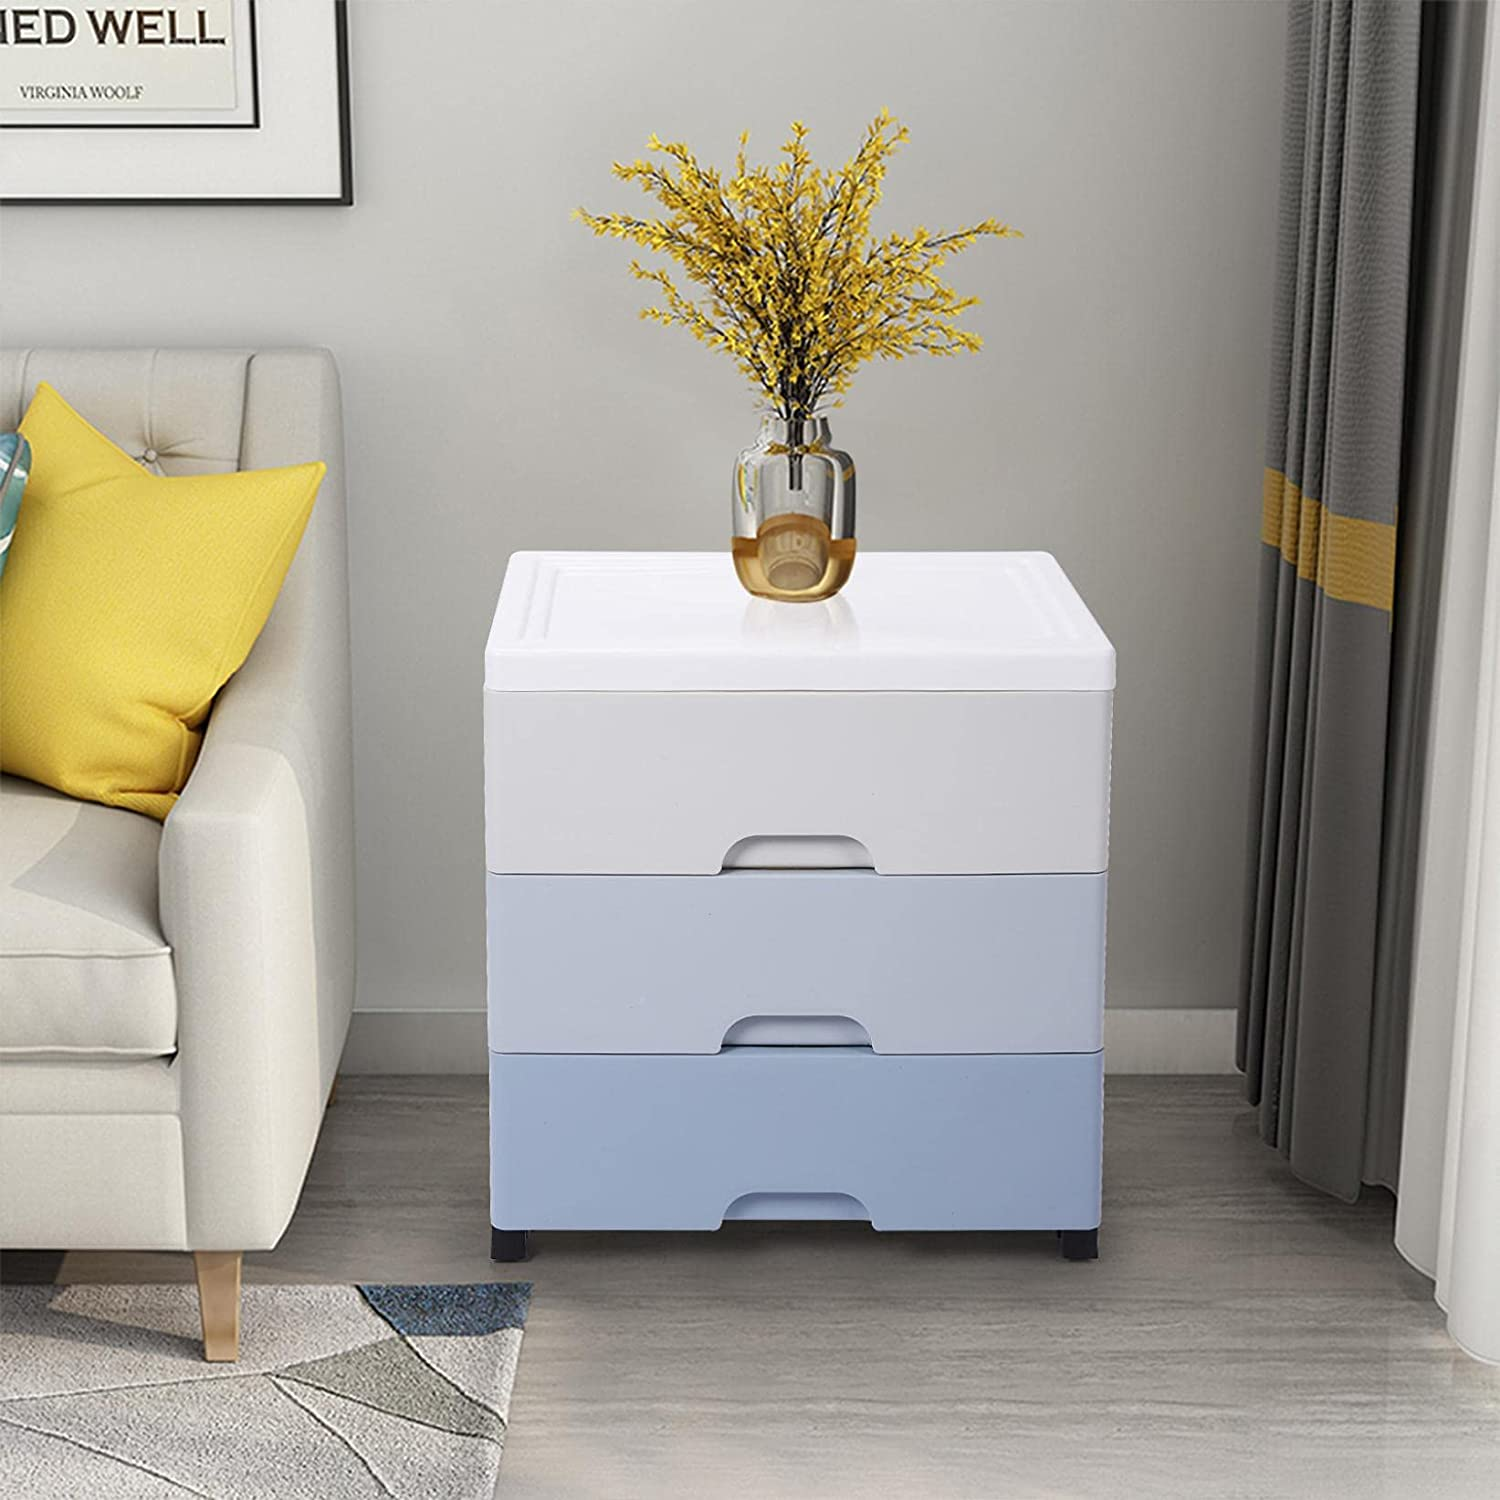 Max 68% OFF Dallas Mall Plastic Drawers Dresser with 3 for Storage Cabinet Makeu